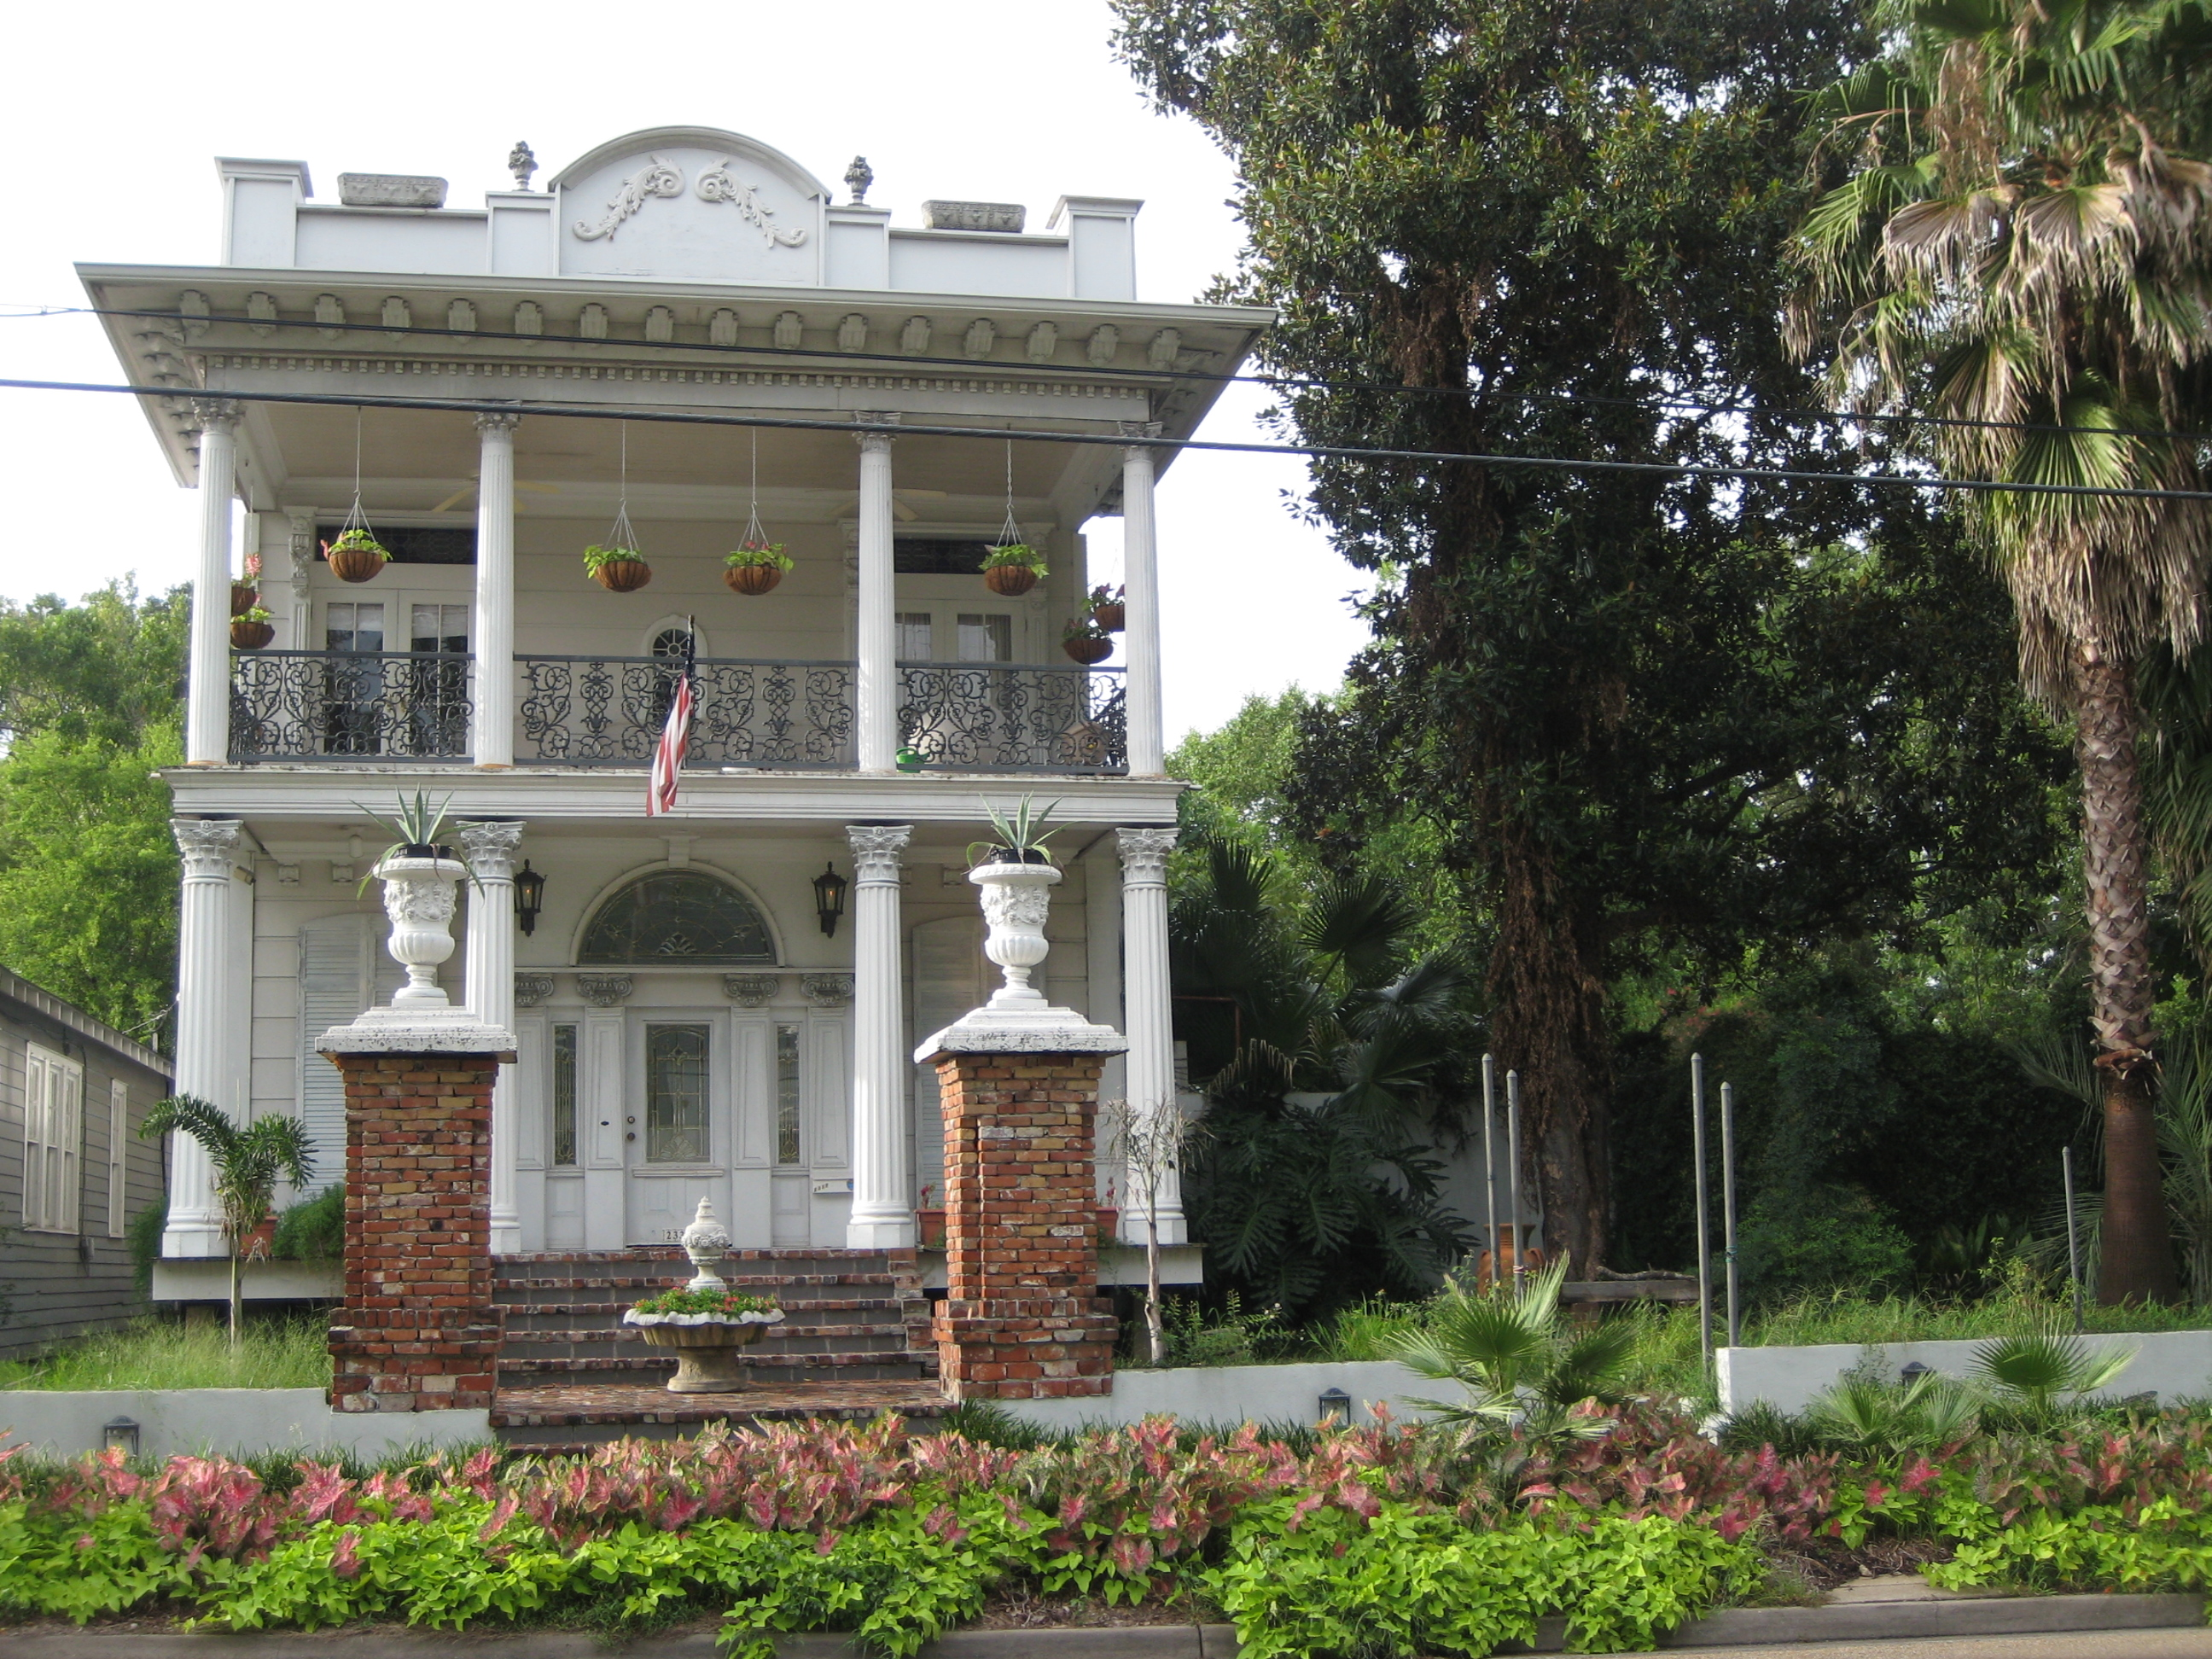 1000 images about antebellum south on pinterest belle for Louisiana home builders